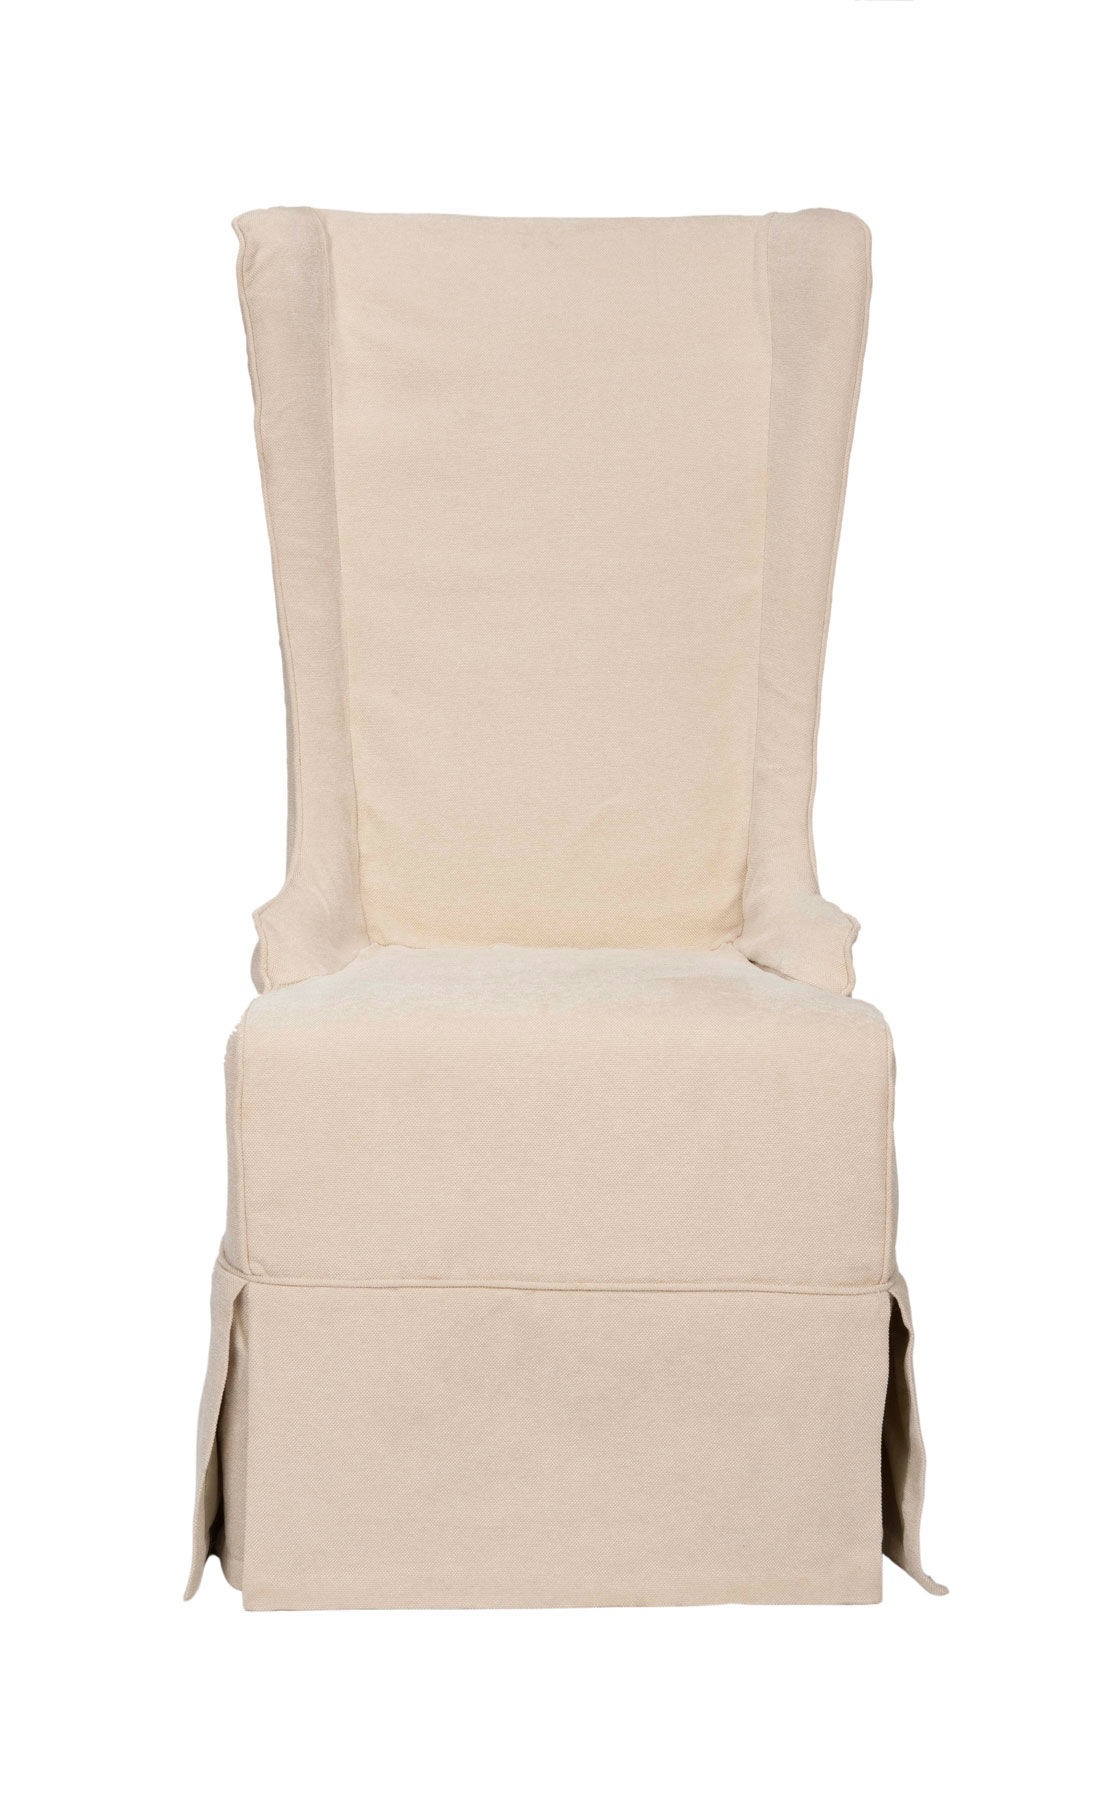 safavieh dining chairs turquoise chair covers mcr4501c furniture by share this product